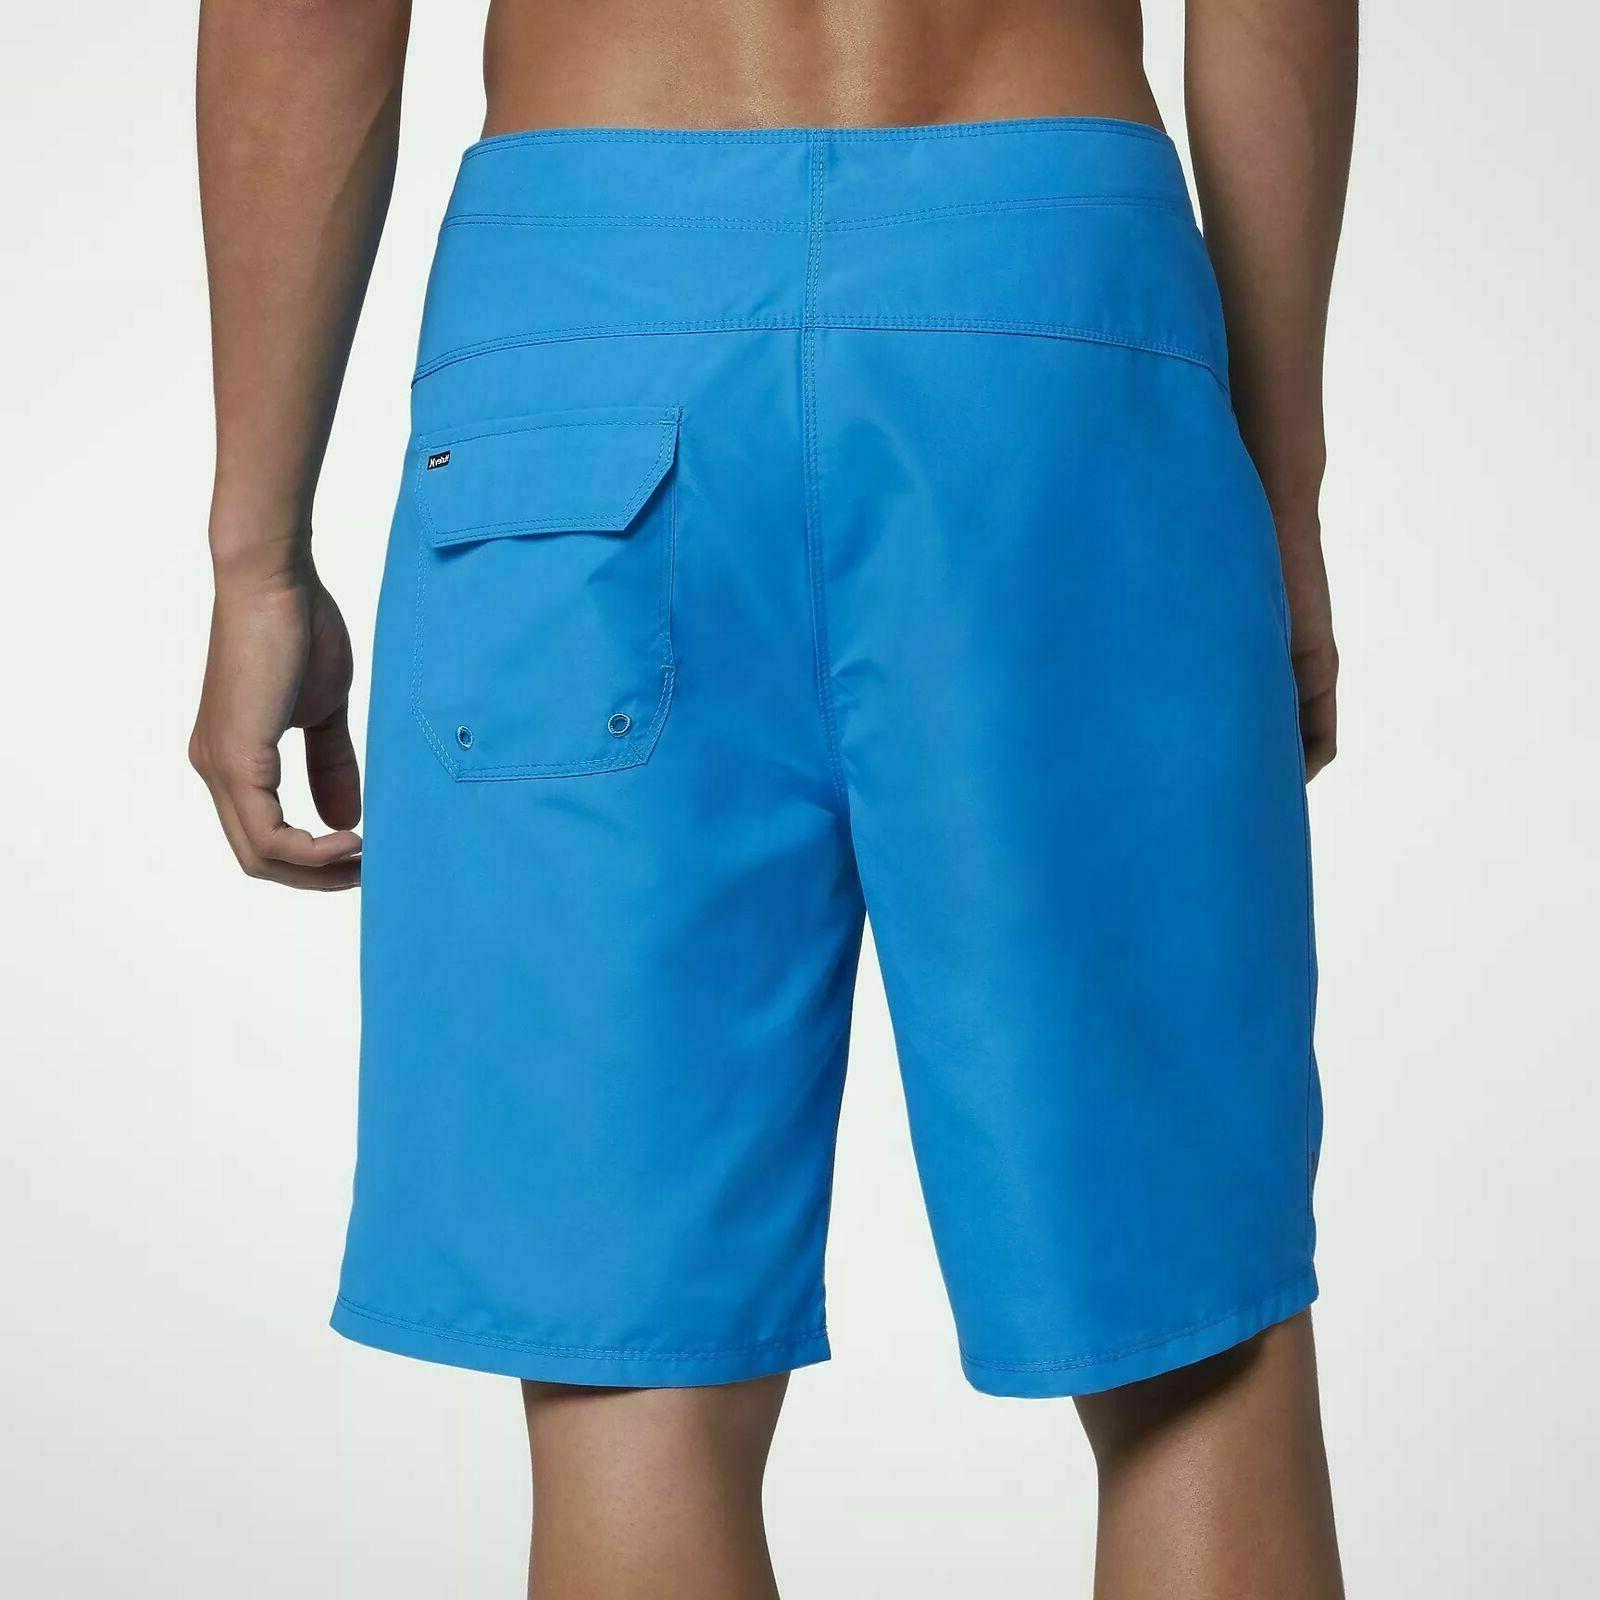 Hurley and 2.0 Supersuede Board Shorts Men's Multi